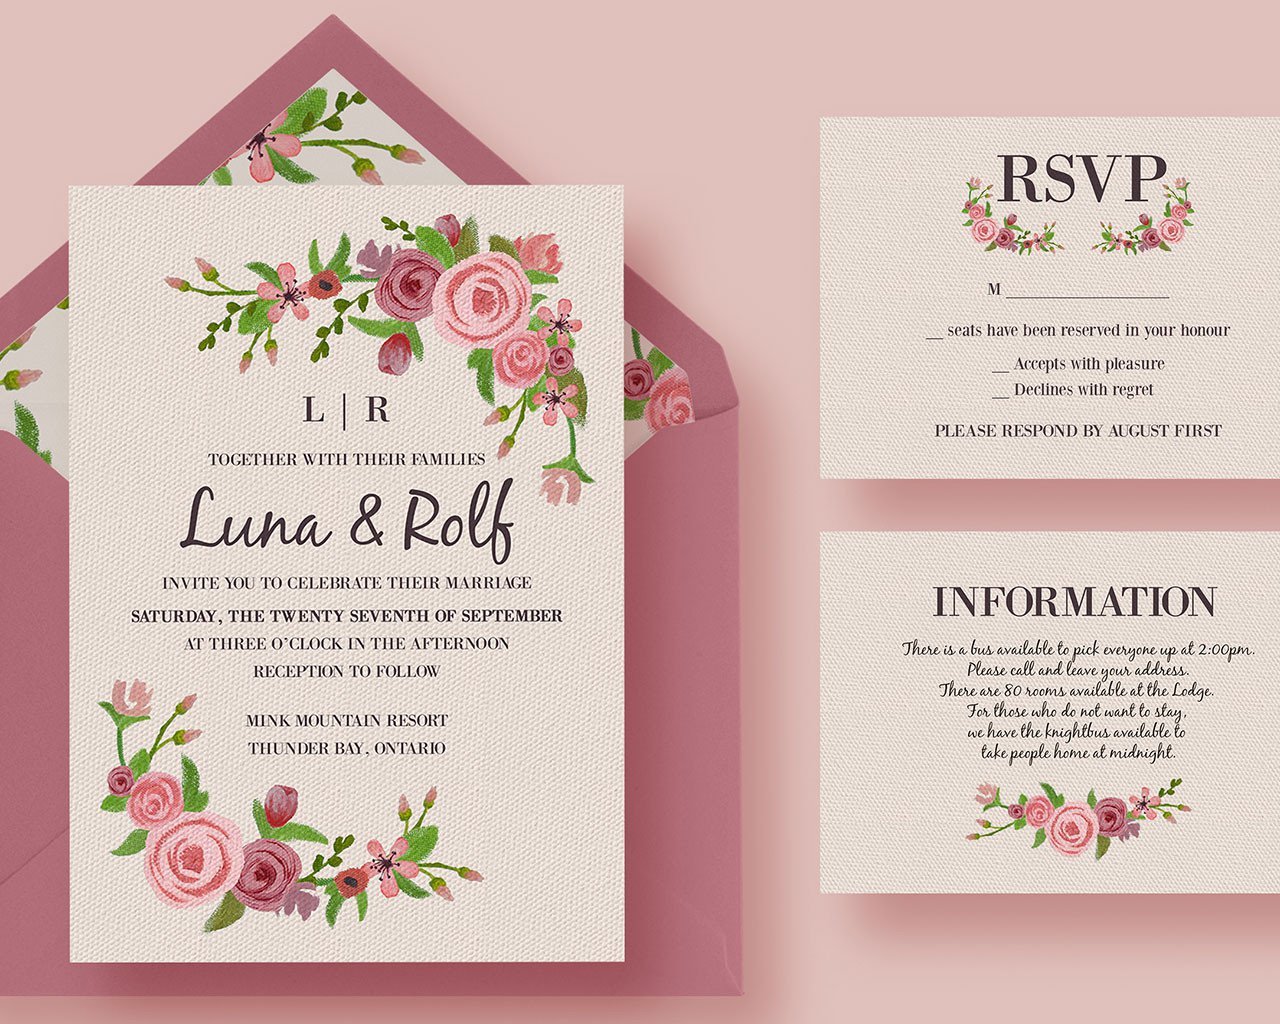 Do you know how to create your wedding invitations? Image